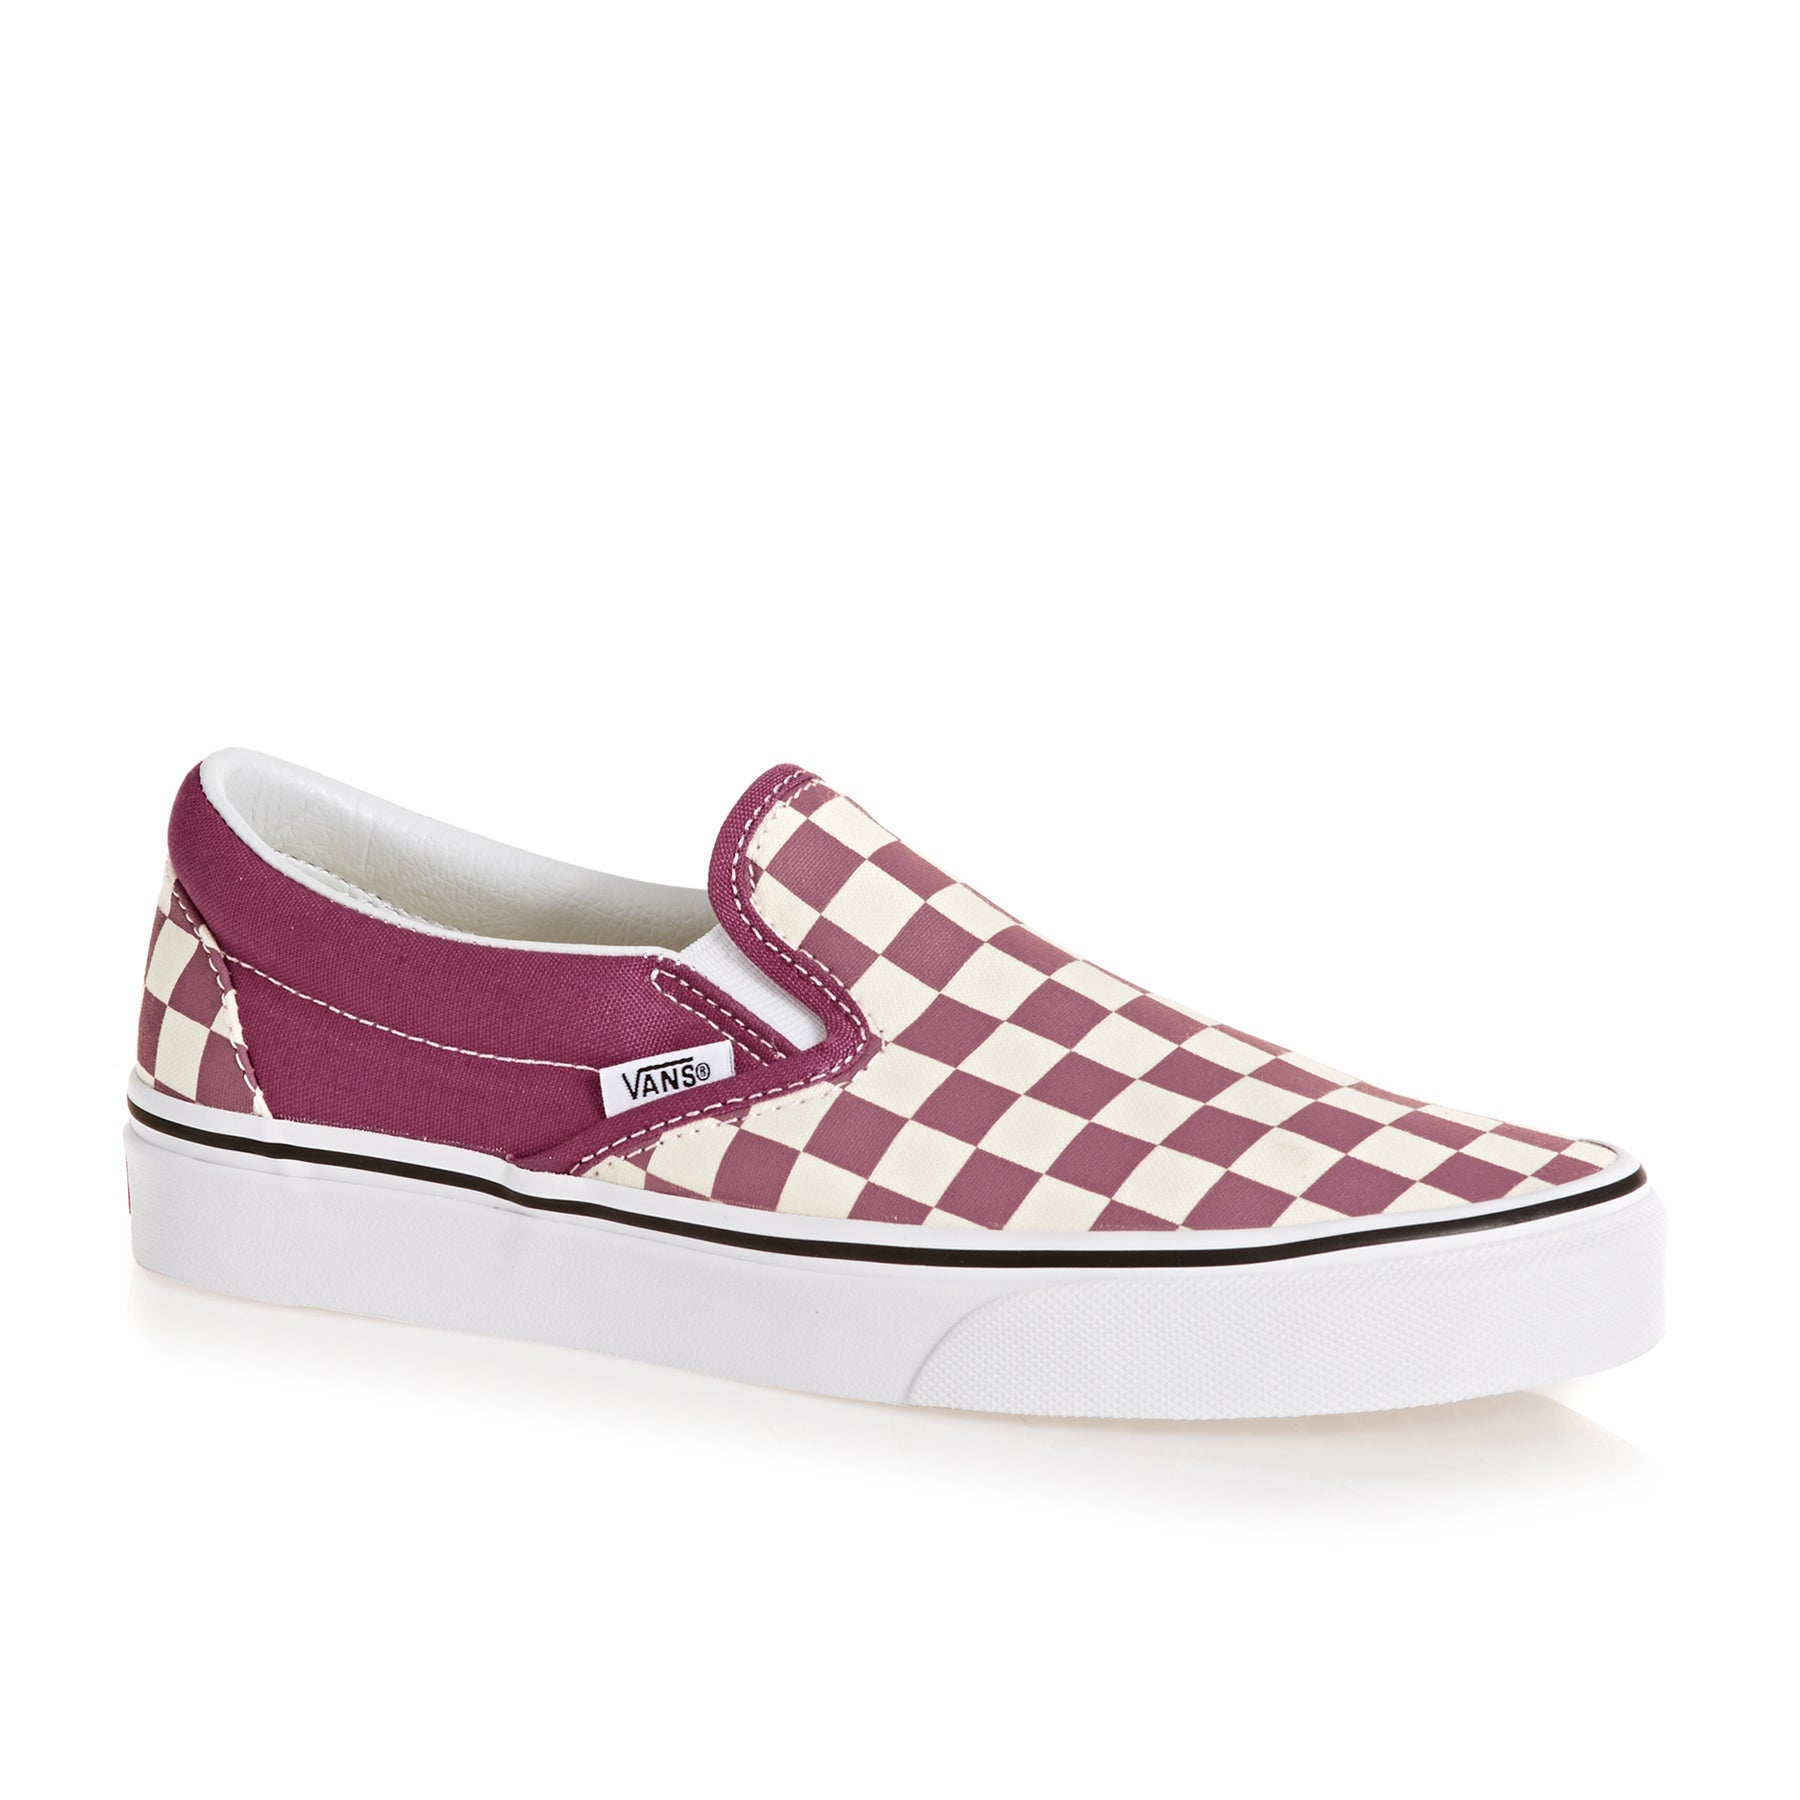 788ea3370d4e Vans Authentic Classic Checkerboard Unisex Footwear Slip Ons - Dry ...